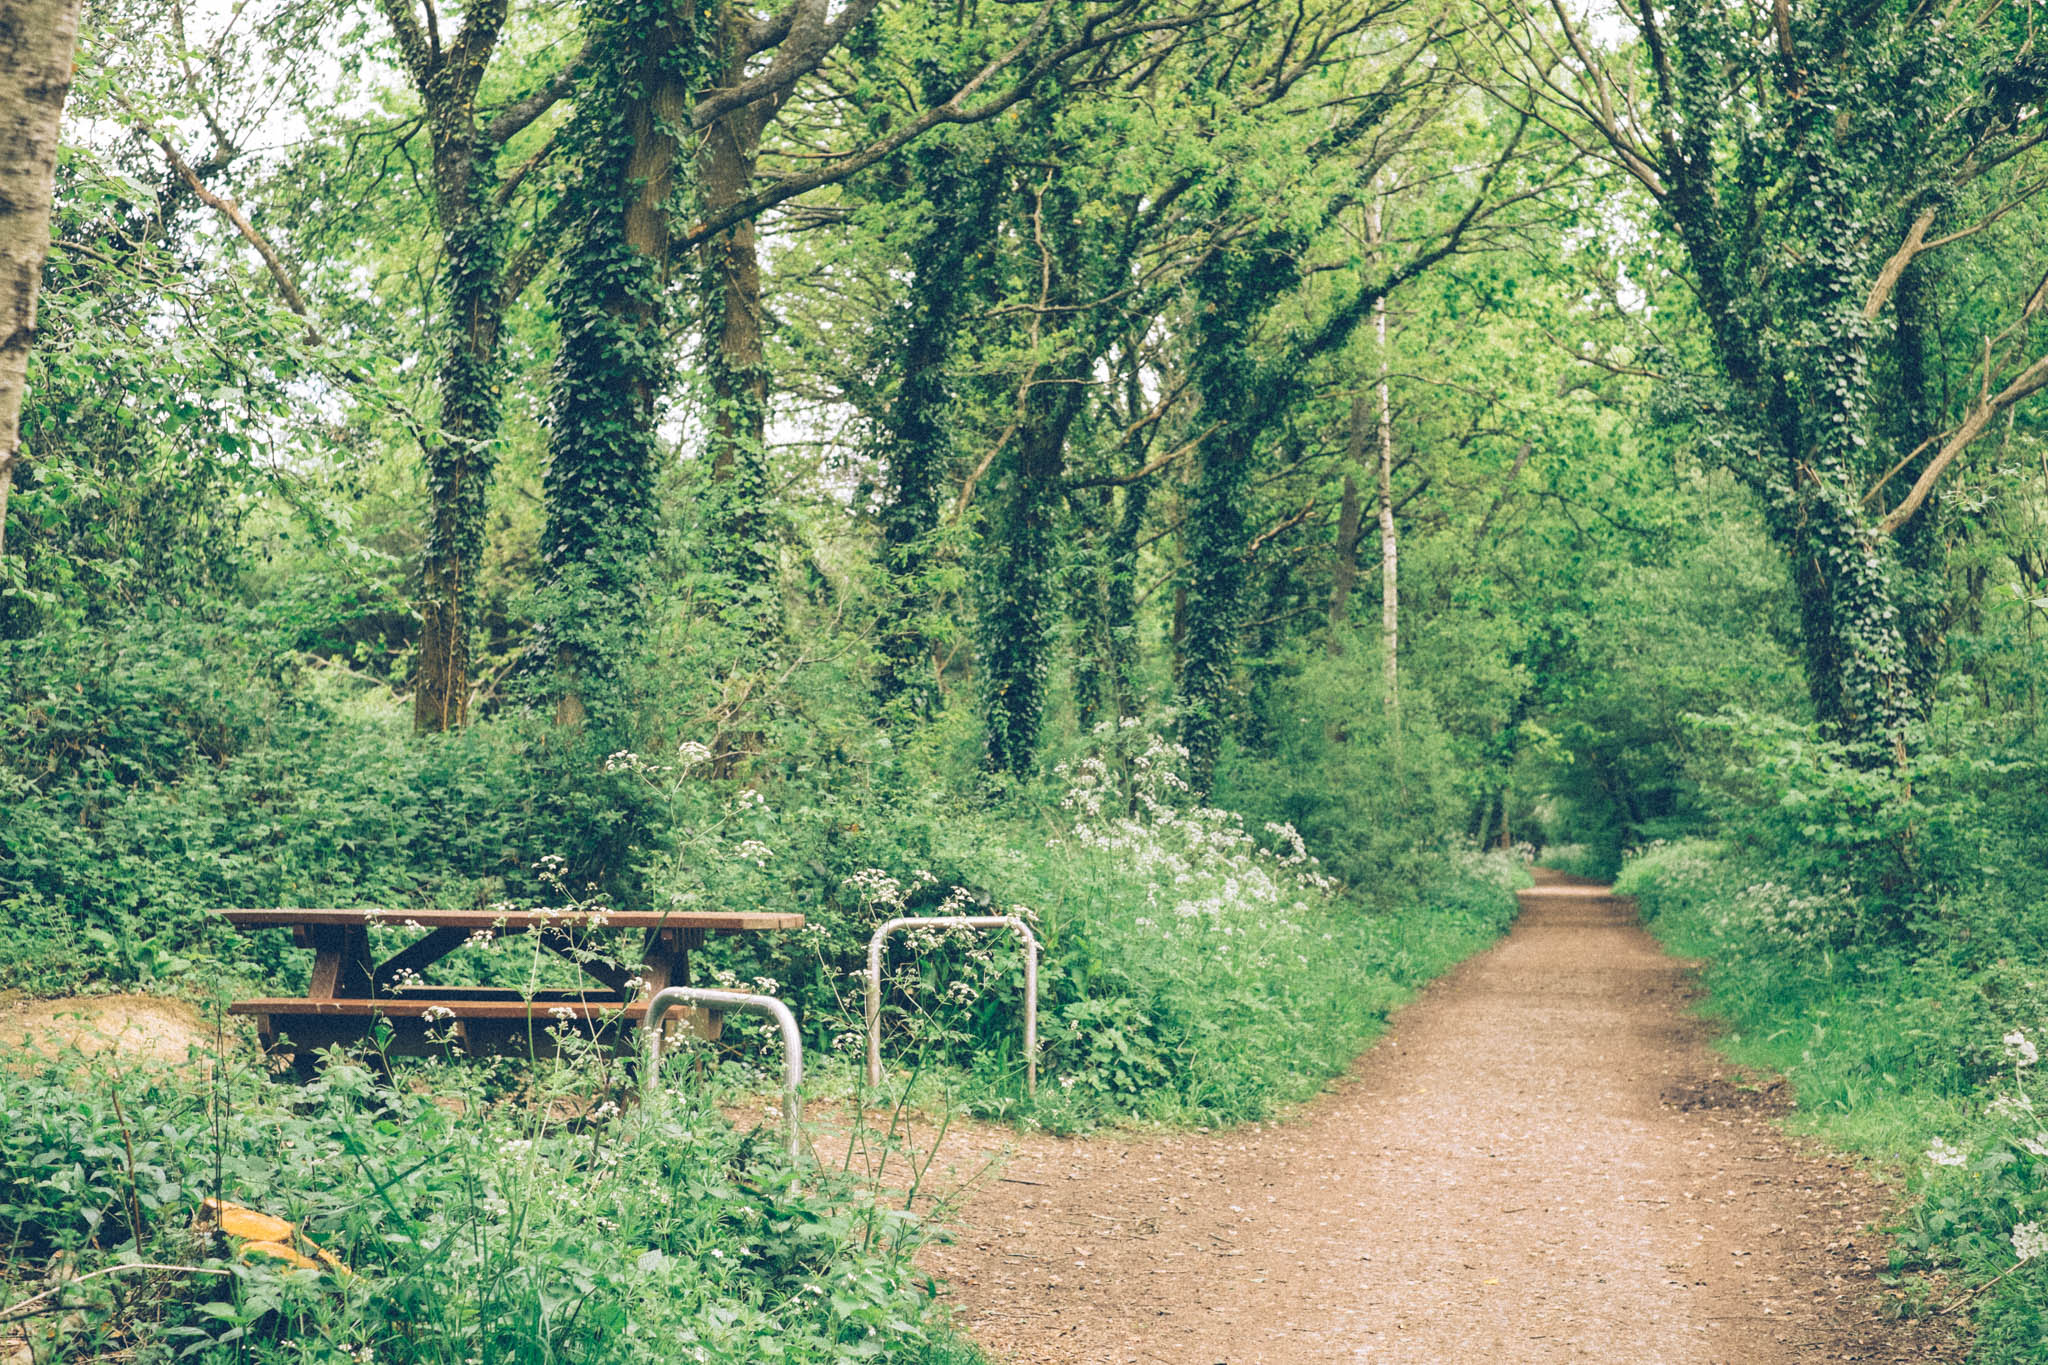 Forest Way off road bike ride. Photography by Emma Gutteridge for Retreat blog.